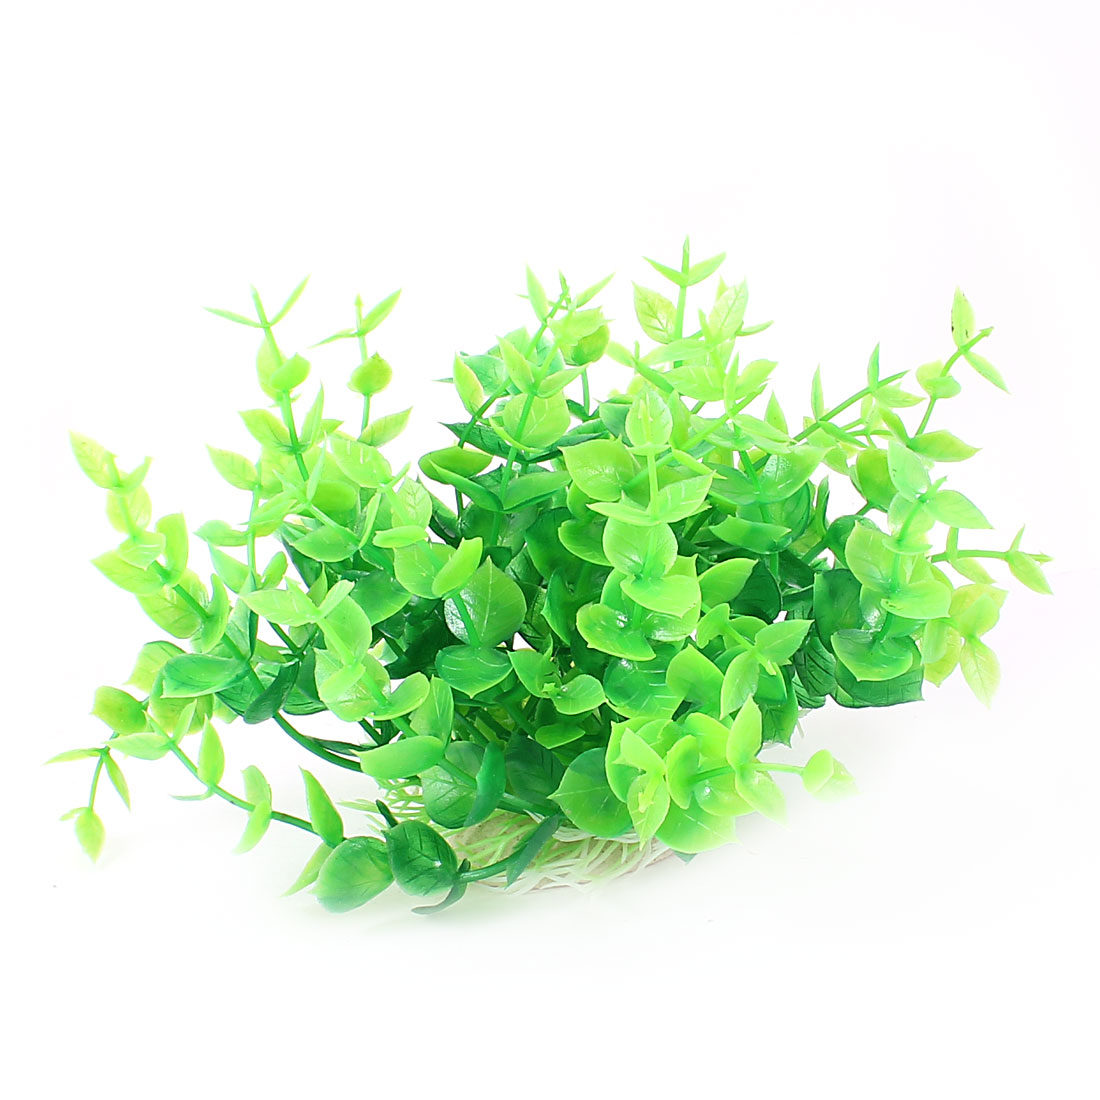 "Aquarium Fish Tank Ornament Landscaping Artificial Emulational Underwater Water Plant Grass Decor Green 4.3"" Height"